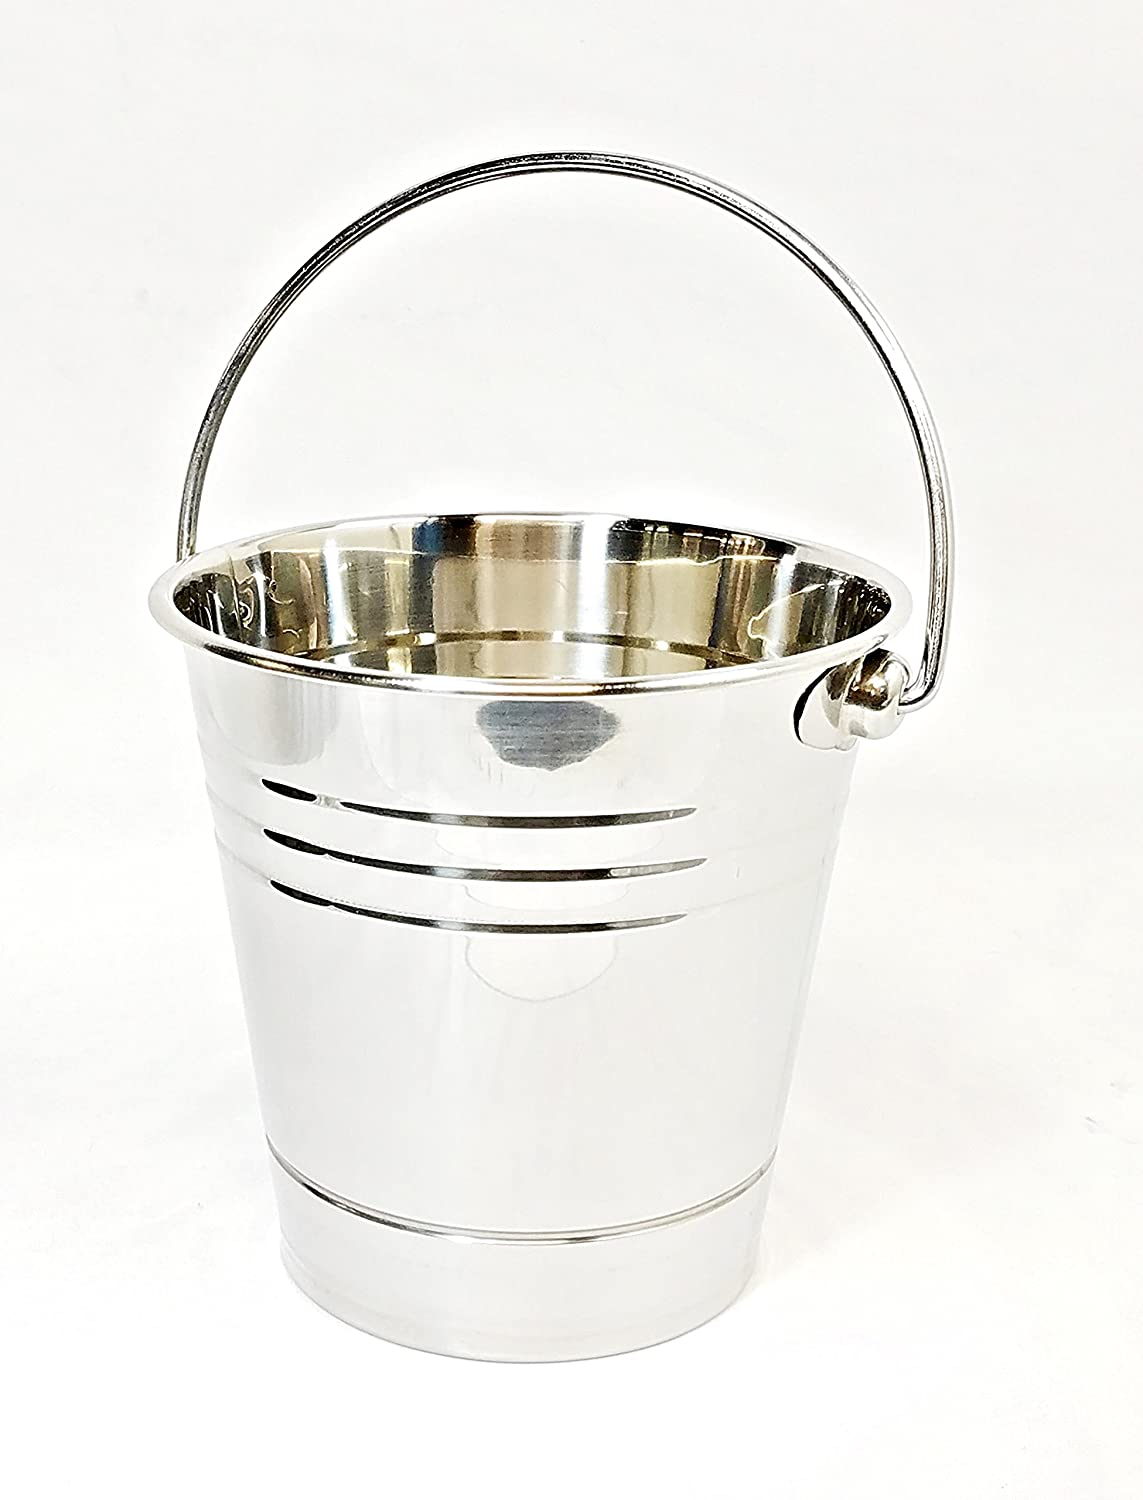 Metal Bucket for Grease with Grill/Smoker - Metal Pail W/Handle - 2 Quart GMG